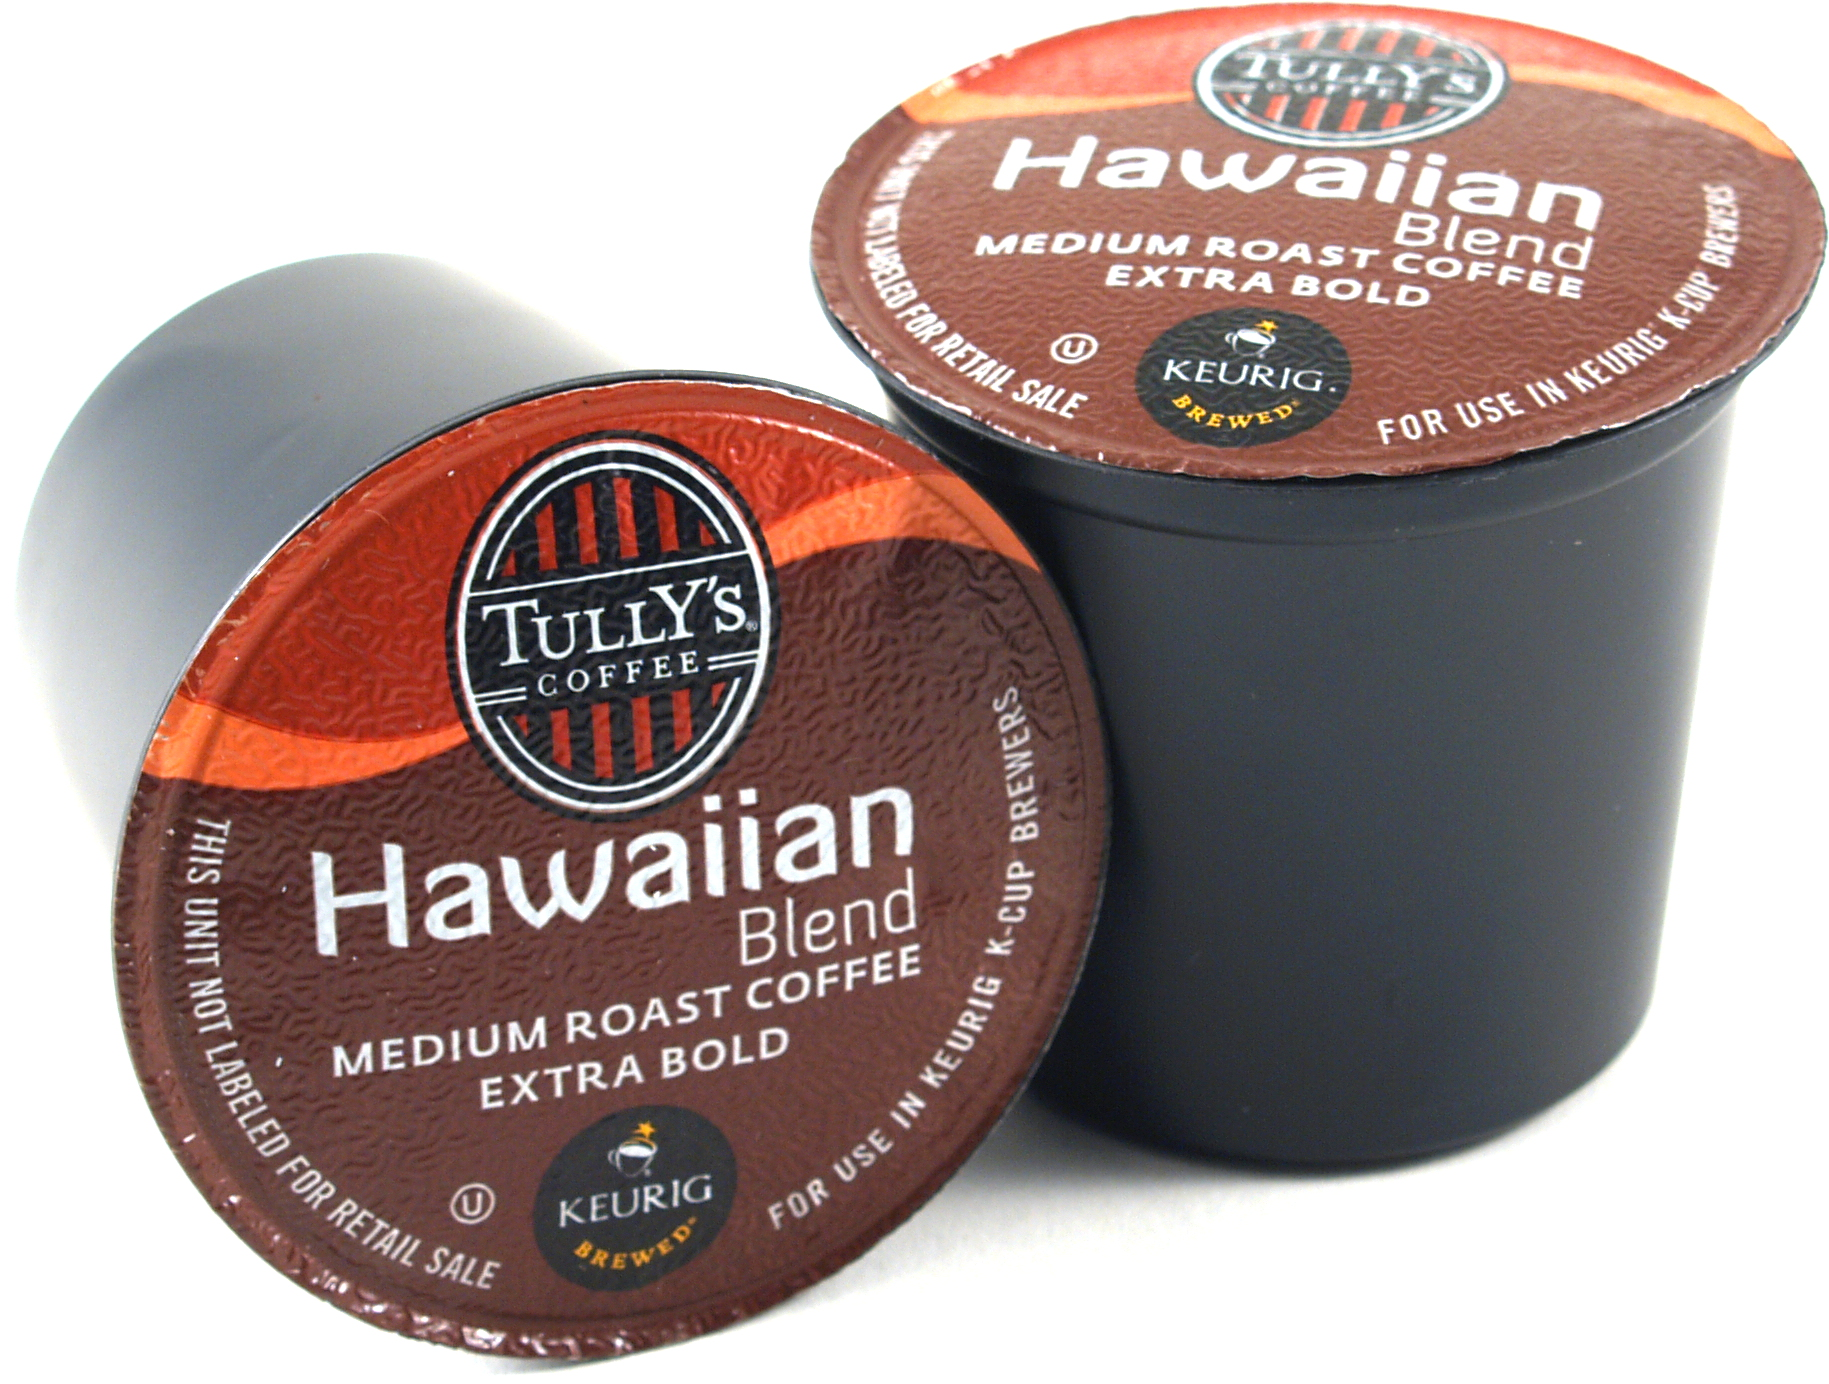 Tully's Hawaiian Blend Coffee Keurig K-Cups, 180 Count - Exceeded Best-By Date